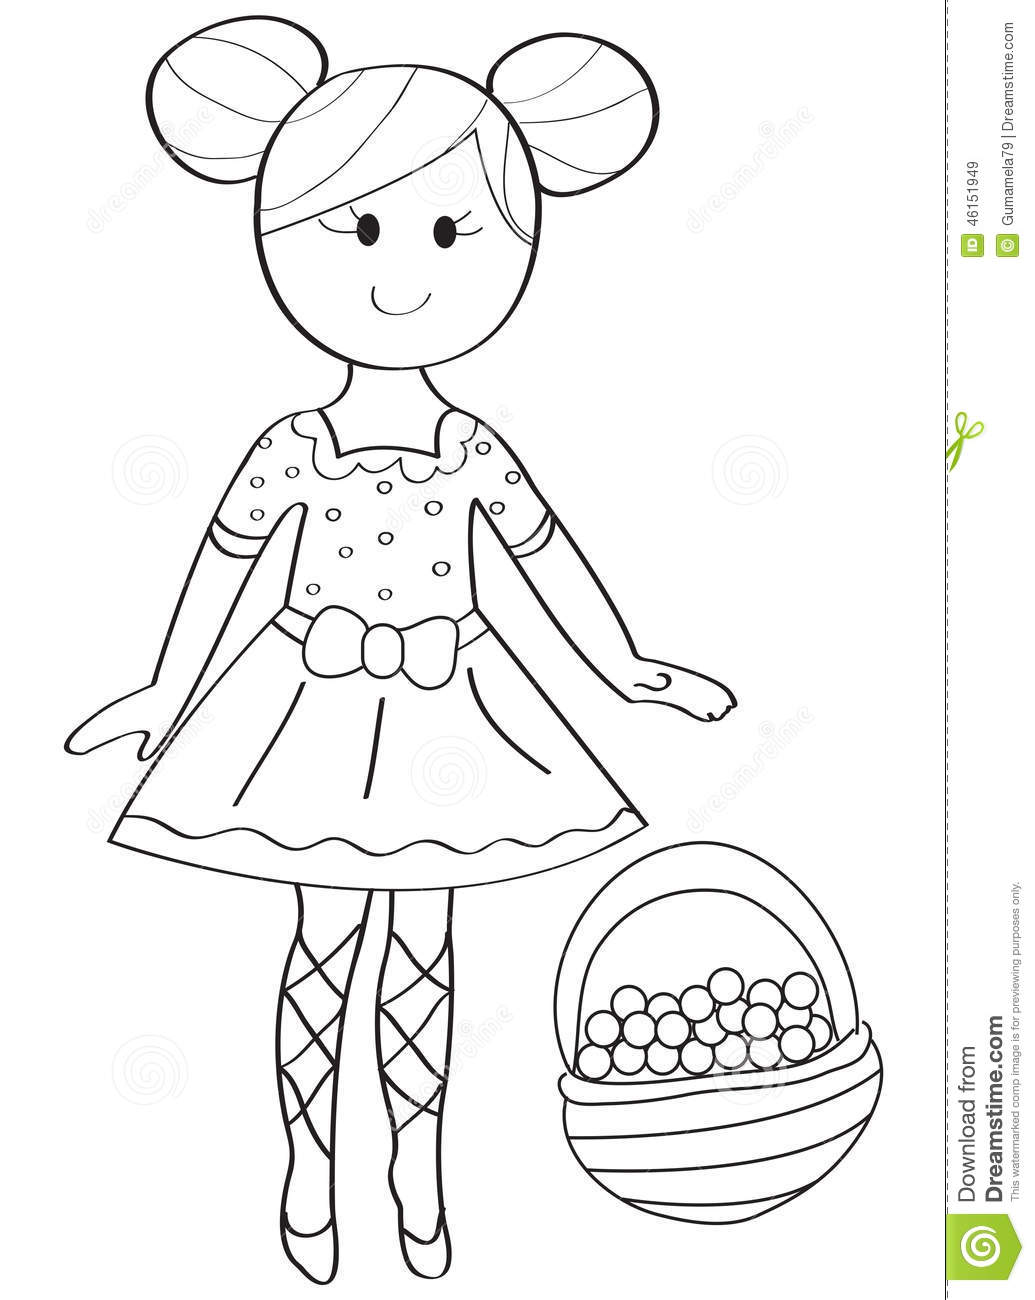 Hand Drawn Coloring Page Of A Ballerina Girl With A Fruit Basket Stock Illustration